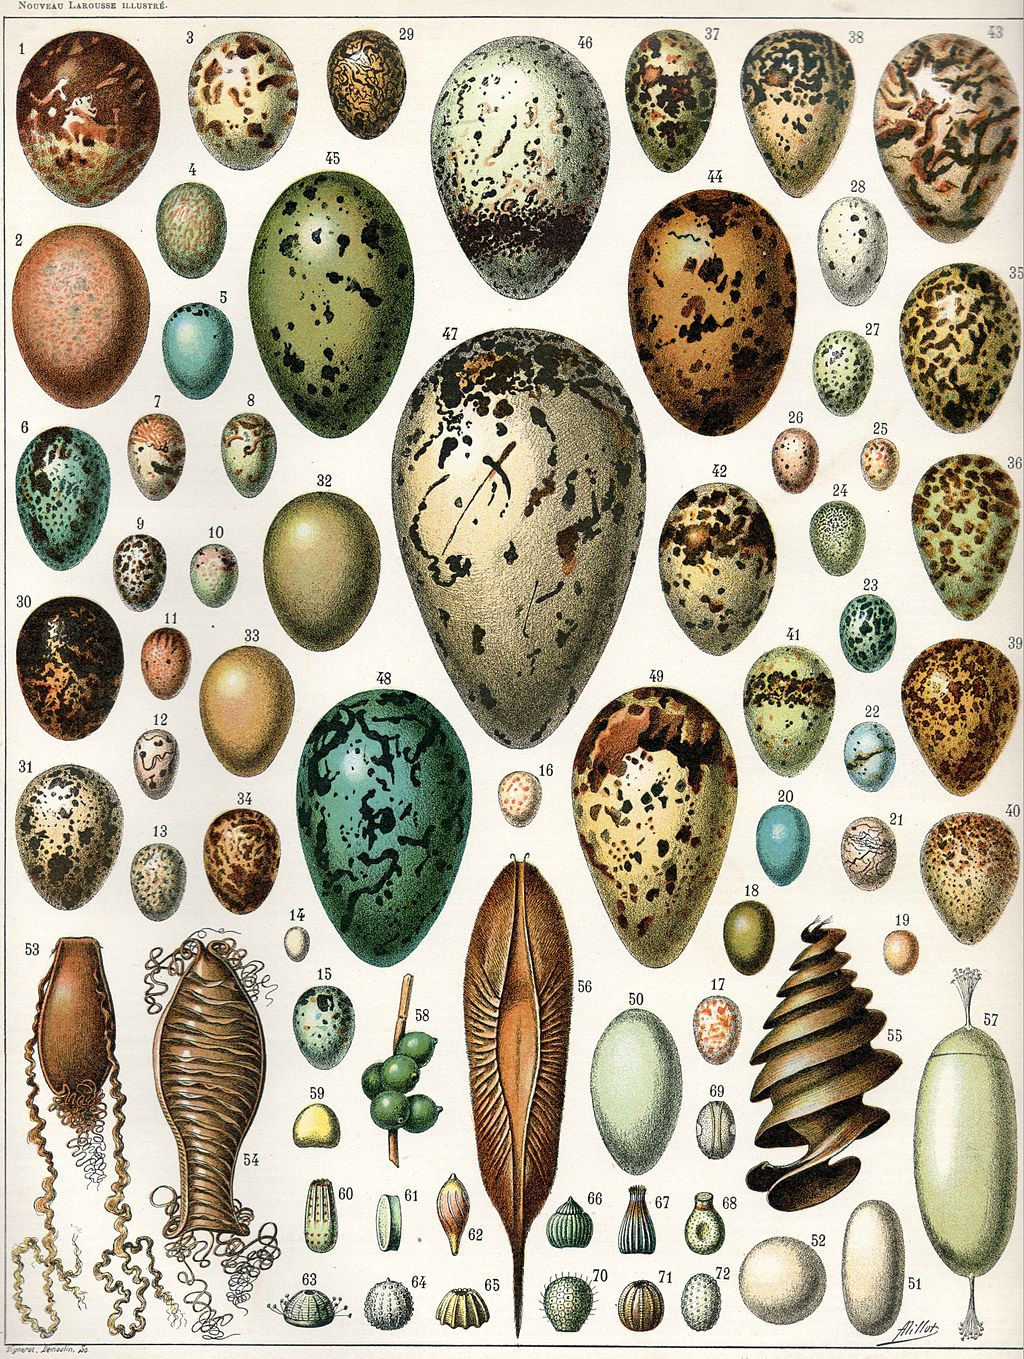 Scientific illustration of a range of different eggs